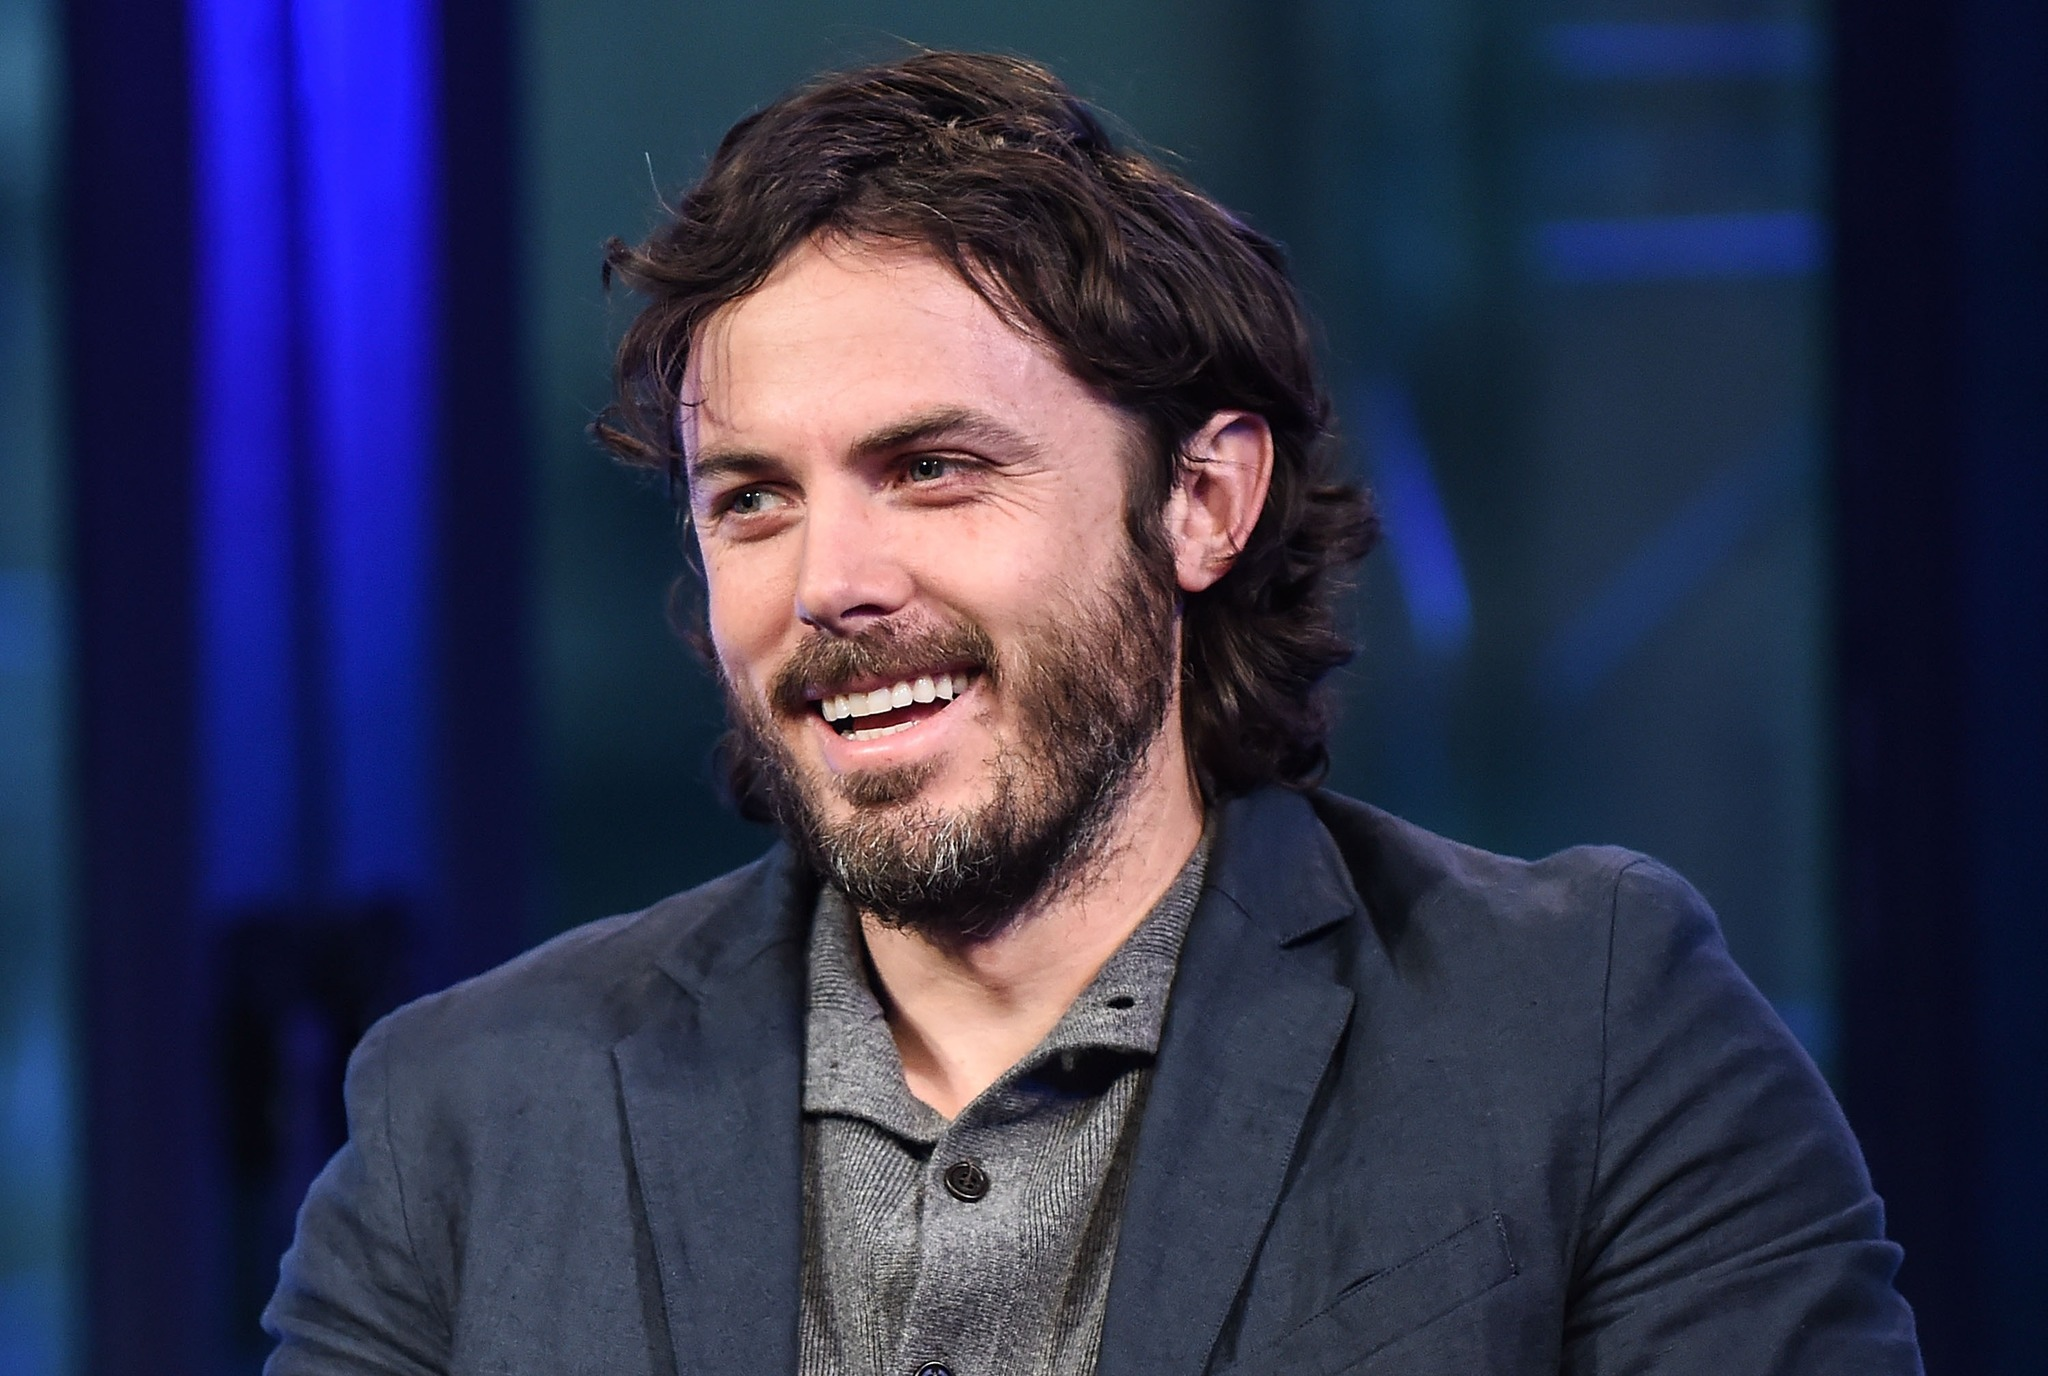 Casey Affleck didn't throw Ben Affleck's Ana de Armas cutout in trash